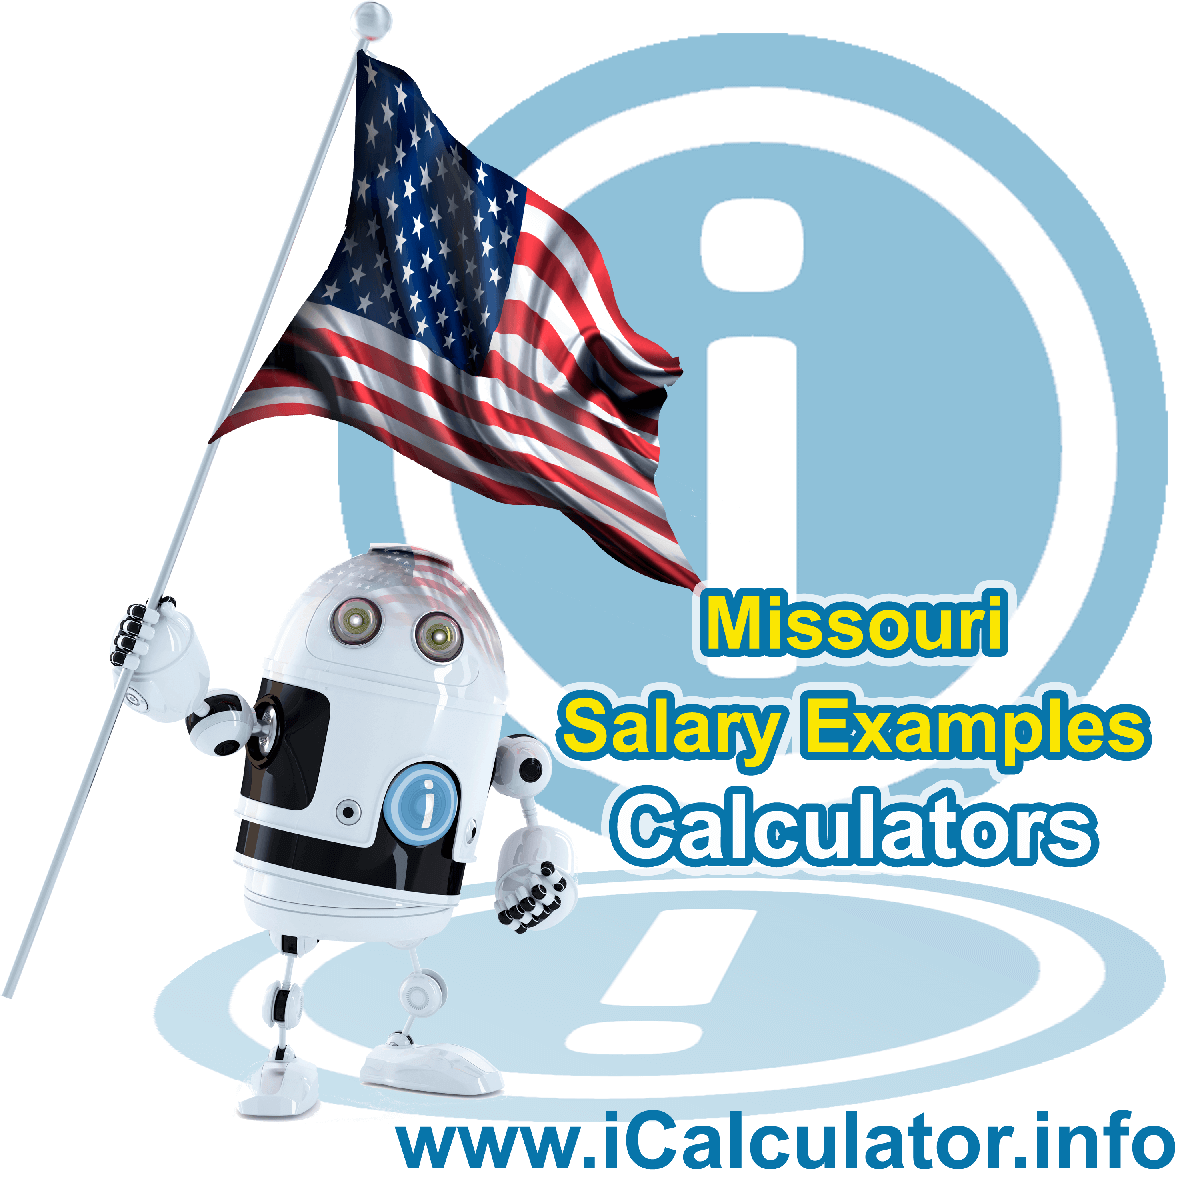 Missouri Salary Example for $110,000.00 in 2020 | iCalculator | $110,000.00 salary example for employee and employer paying Missouri State tincome taxes. Detailed salary after tax calculation including Missouri State Tax, Federal State Tax, Medicare Deductions, Social Security, Capital Gains and other income tax and salary deductions complete with supporting Missouri state tax tables